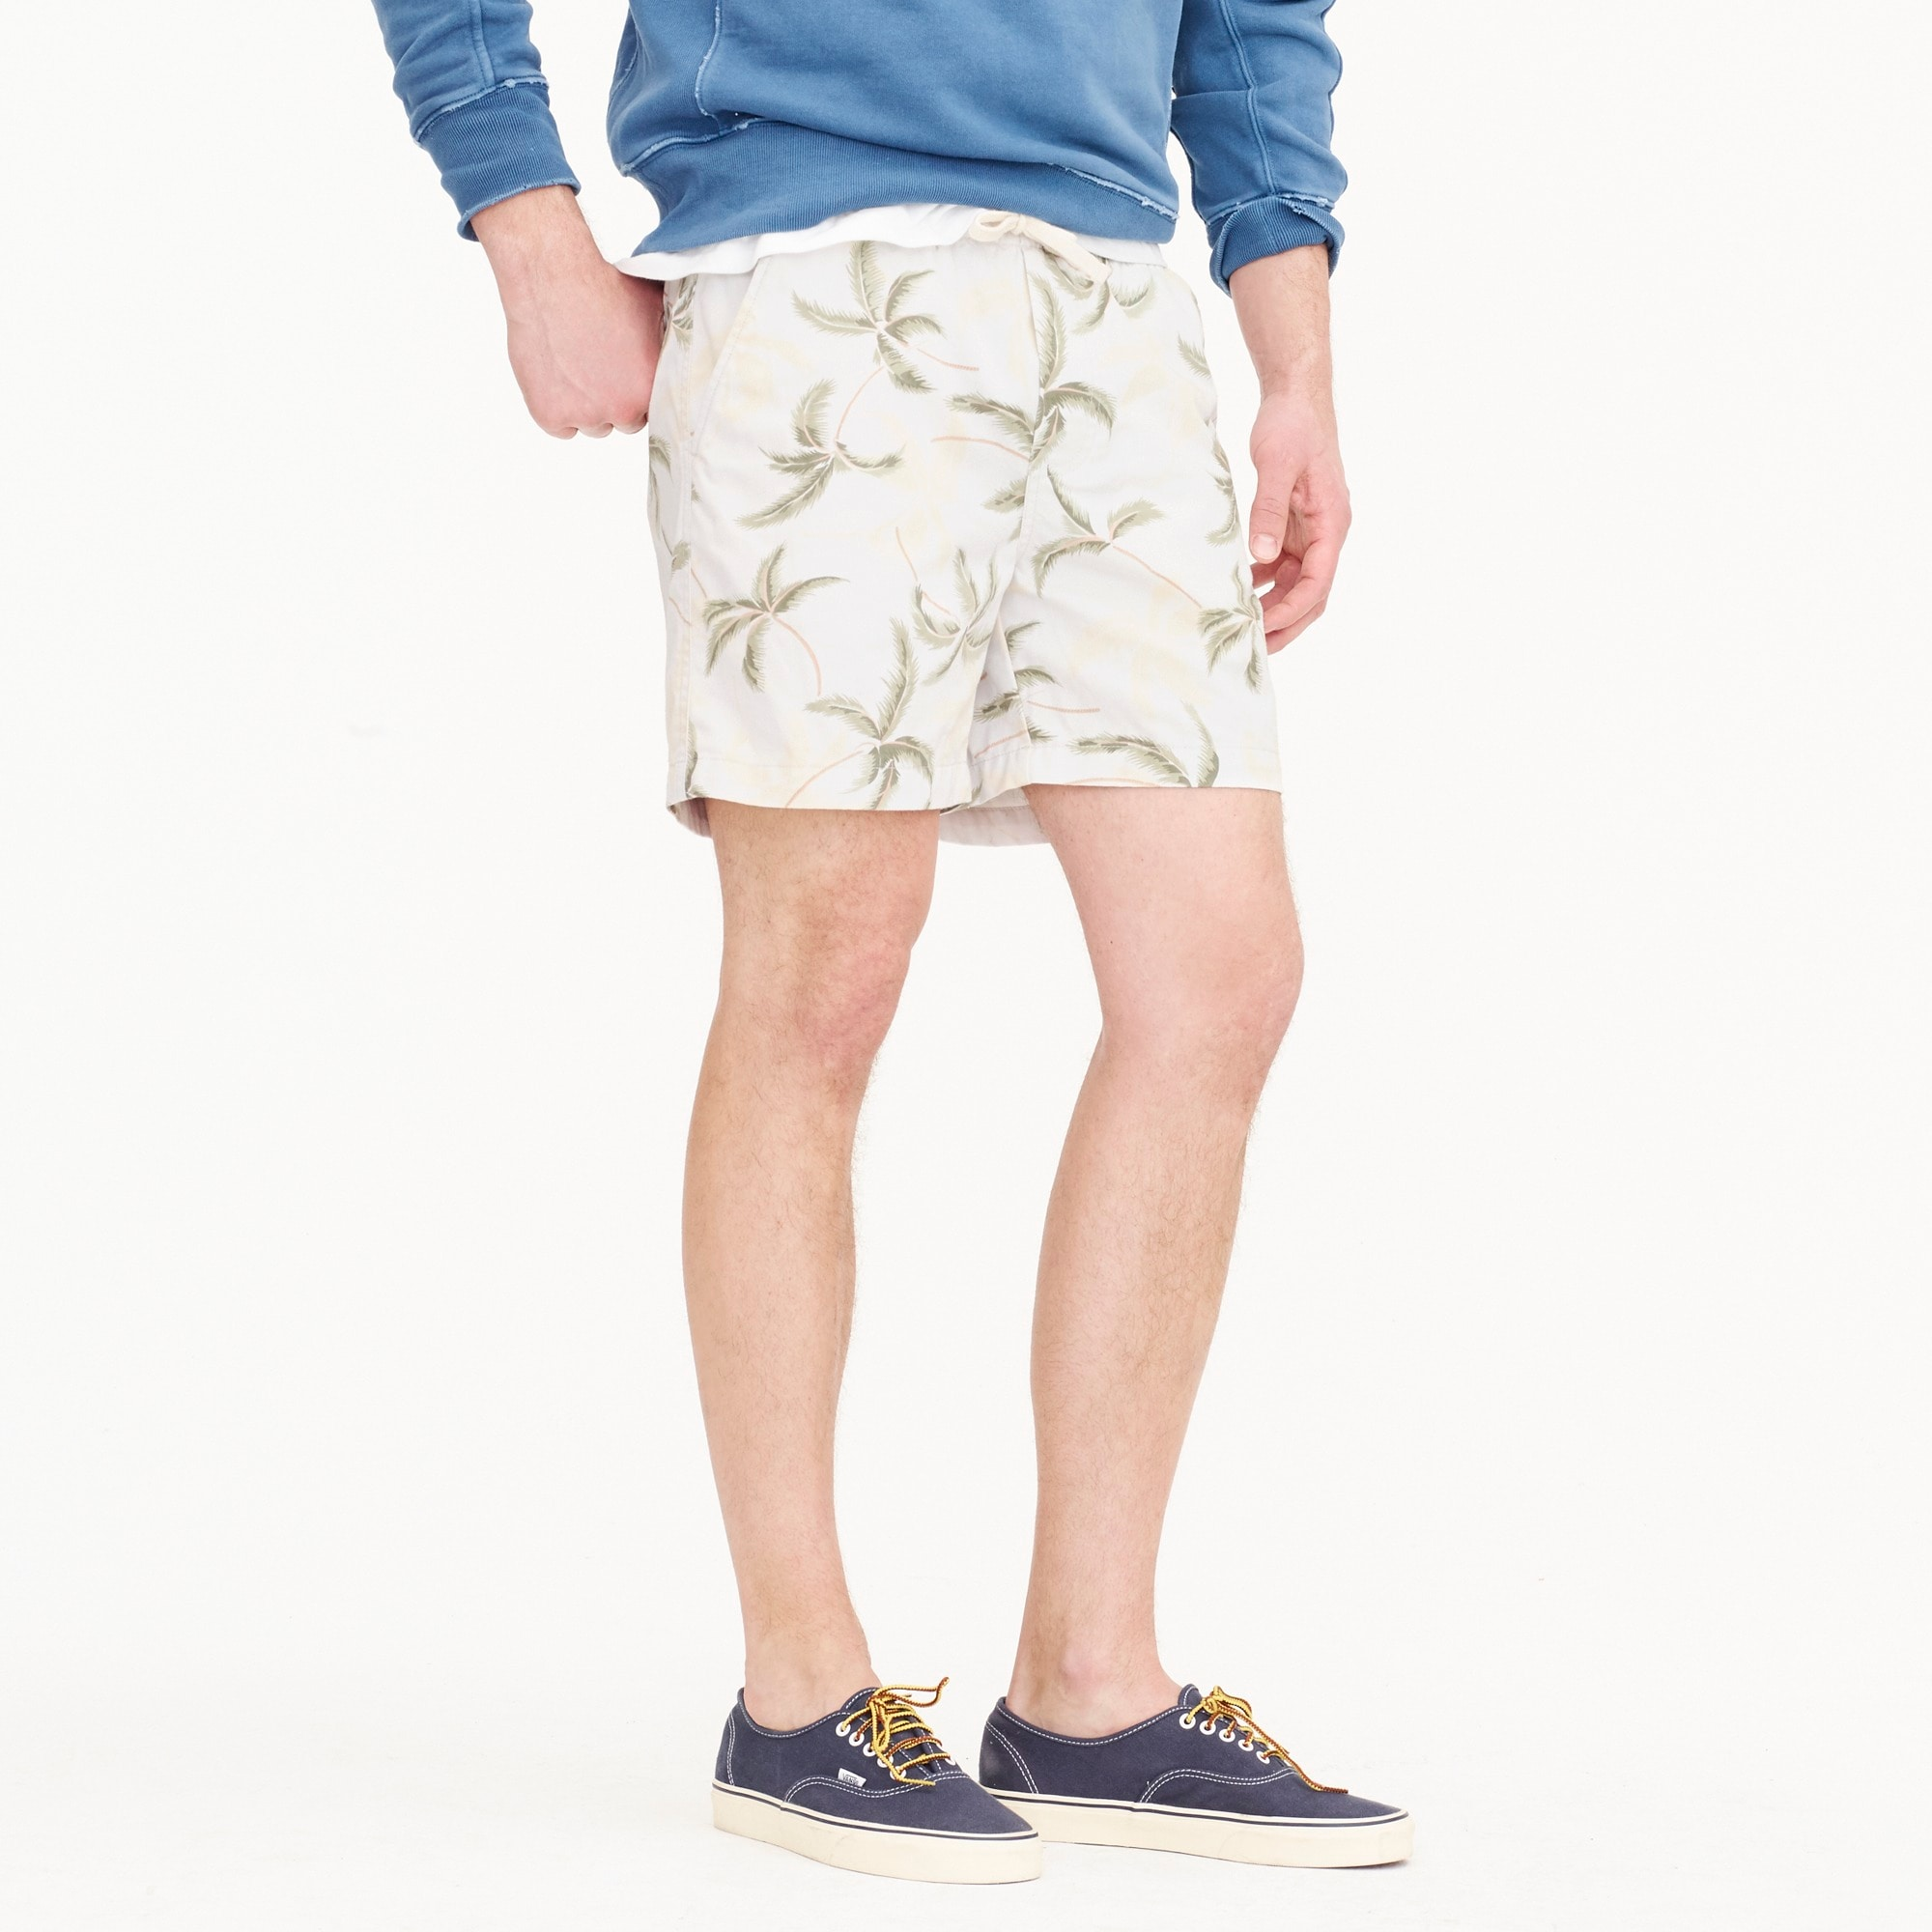 Stretch dock short in chambray